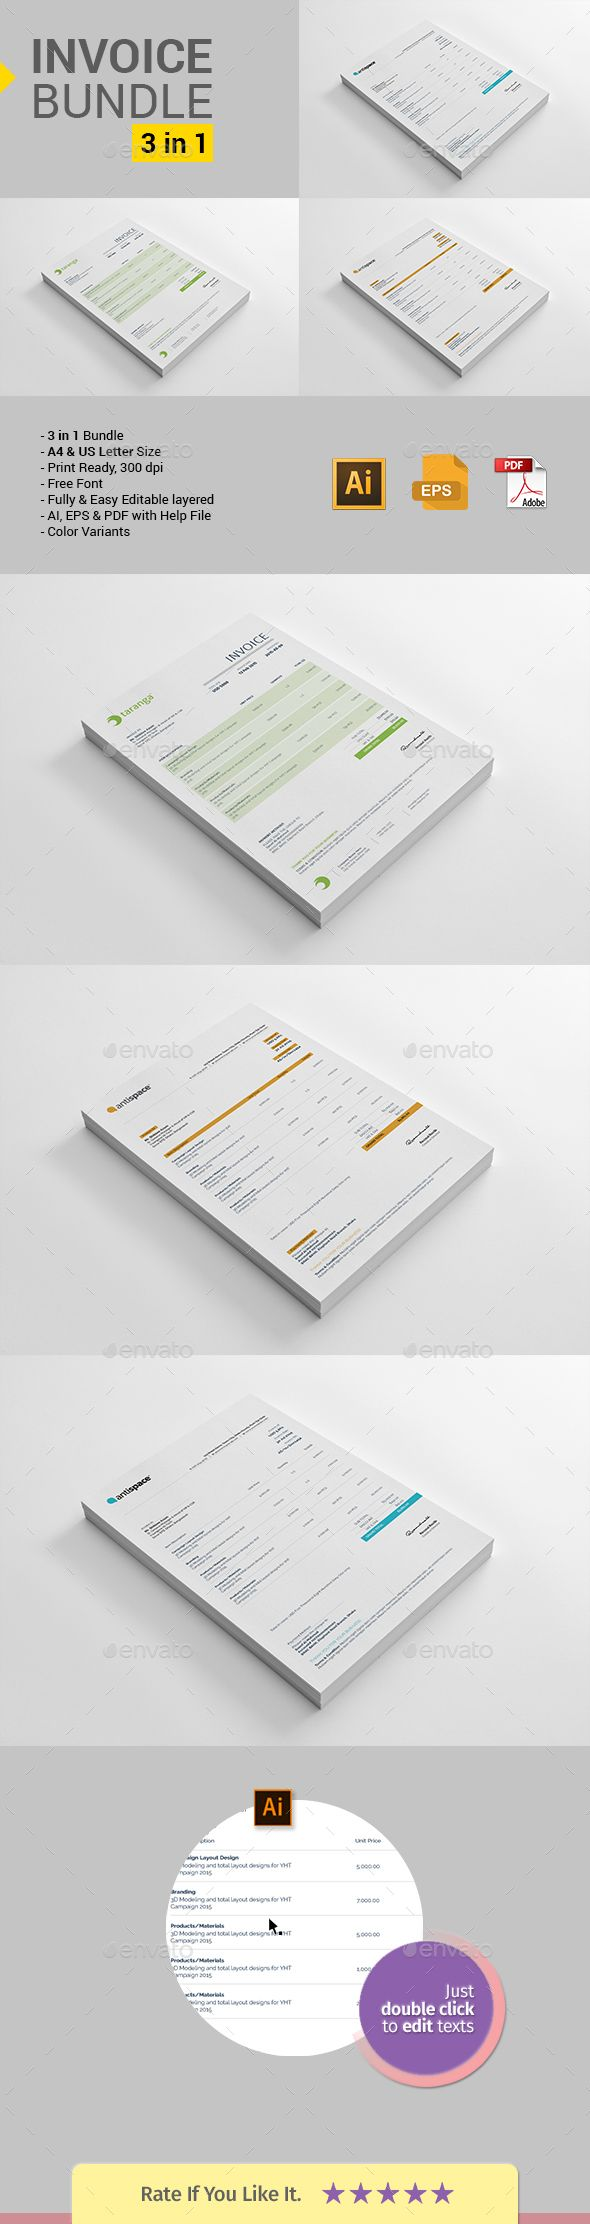 Invoice Bundle — Vector EPS #business invoice #red invoice • Available here → https://graphicriver.net/item/invoice-bundle-4in1/20776815?ref=pxcr